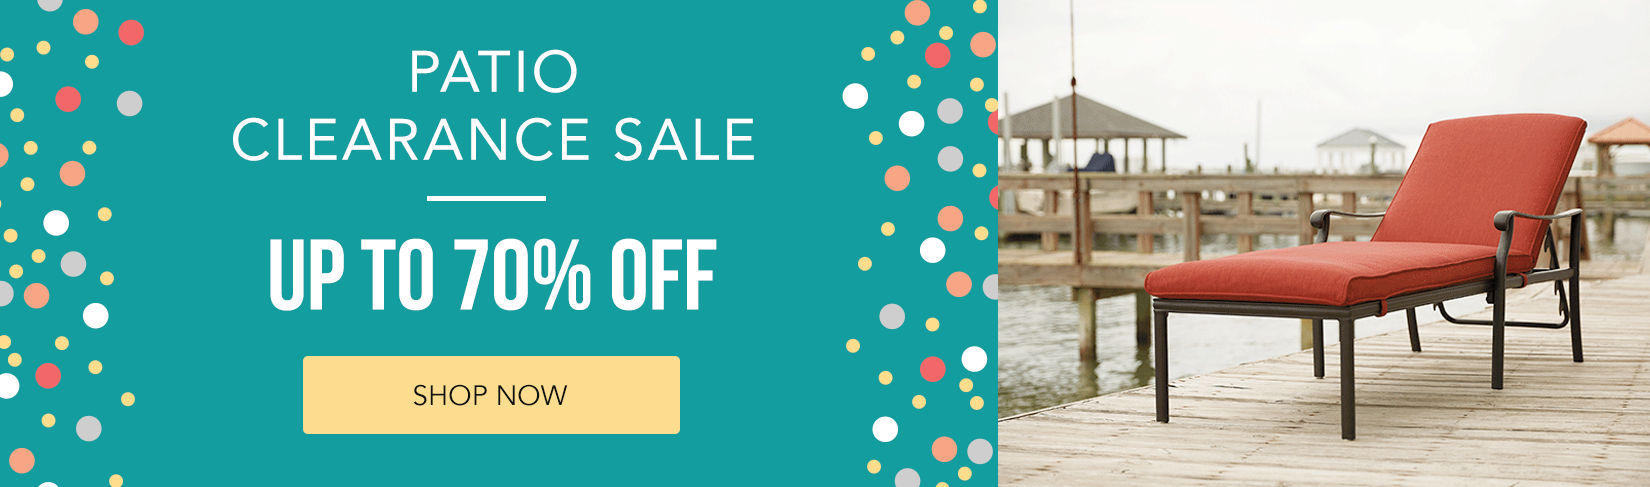 Patio Clearance Sale | Up to 70% off